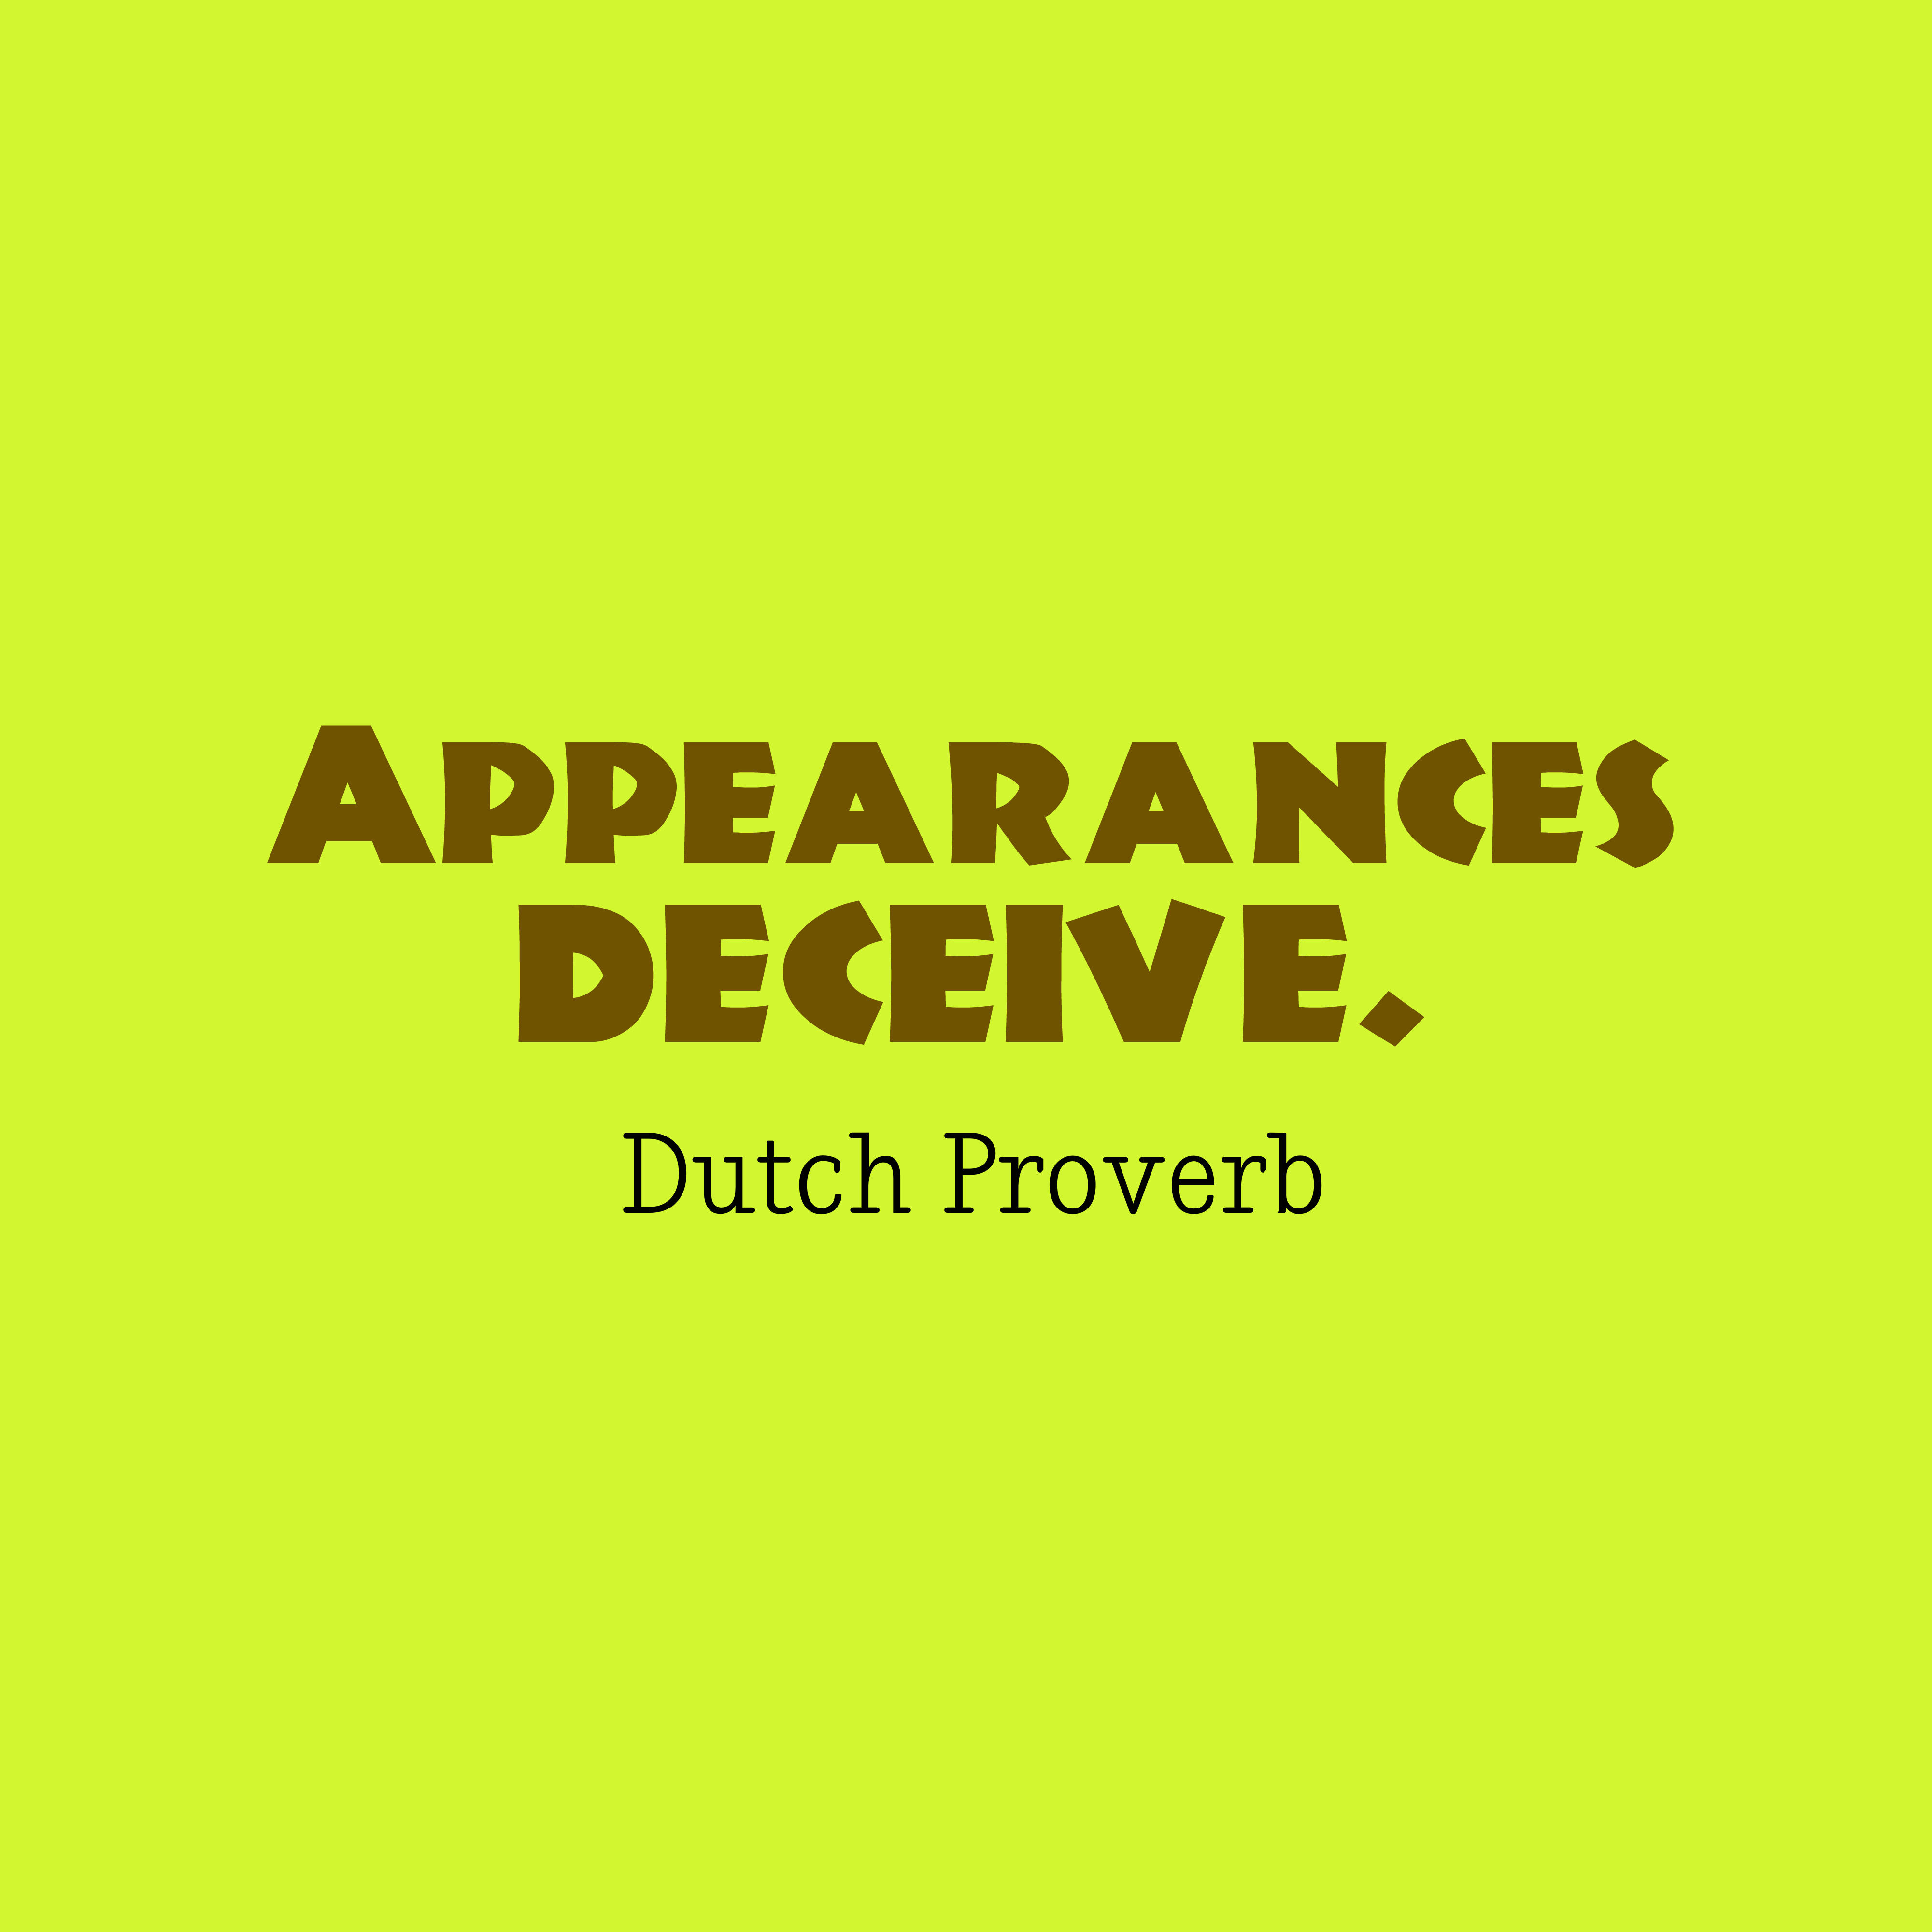 Quotes image of Appearances deceive.